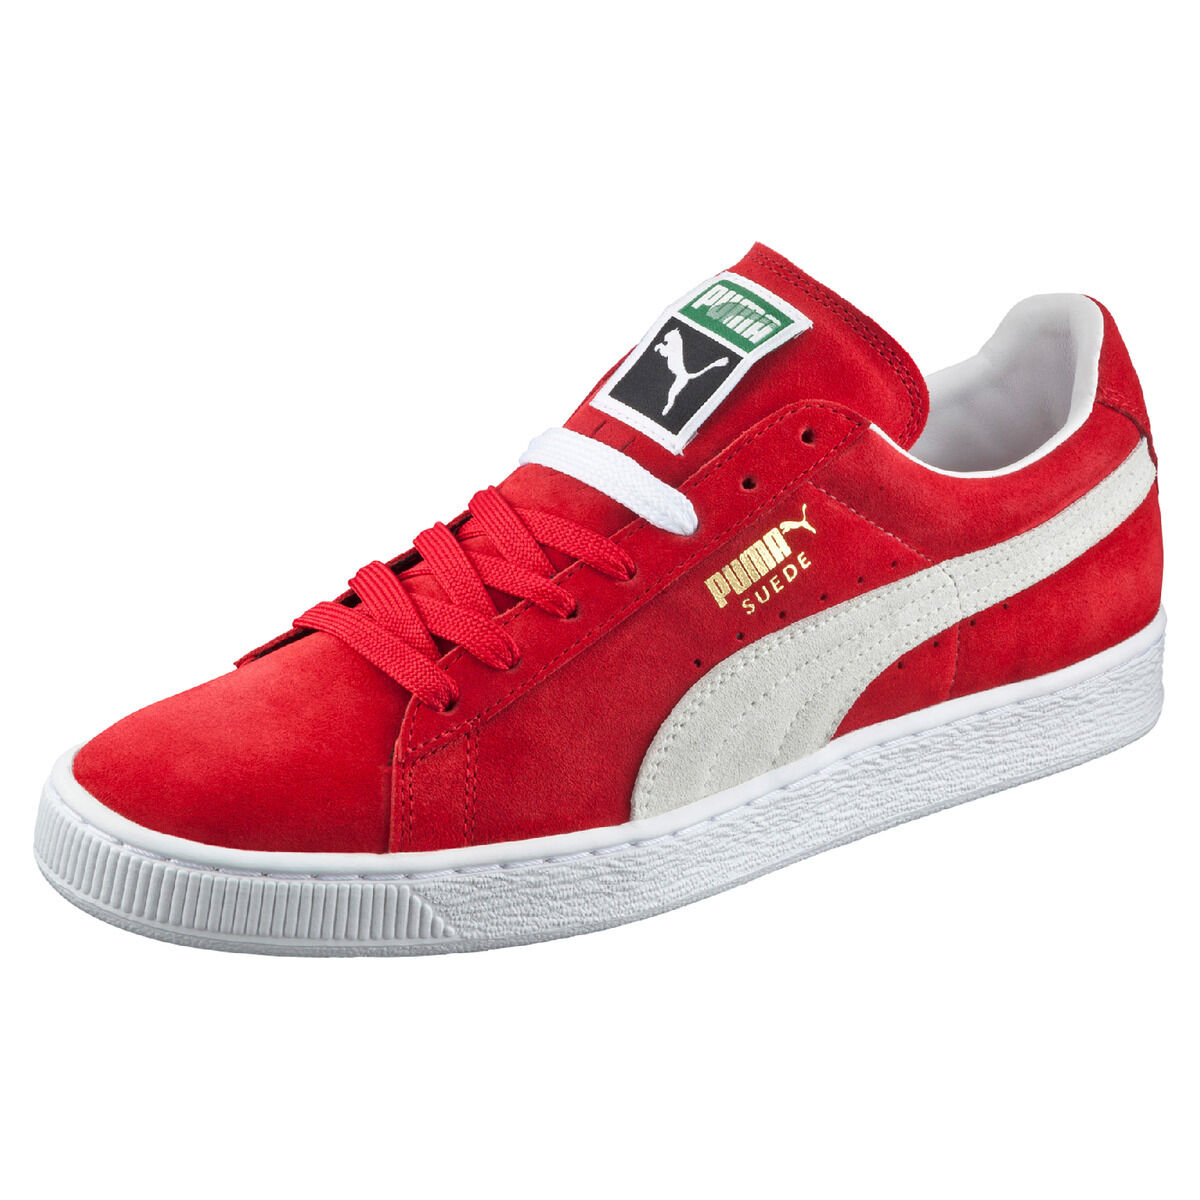 Puma Suede Classic 352634 Sneaker Uomo Rosso Team Regal Red/White 05 w8E